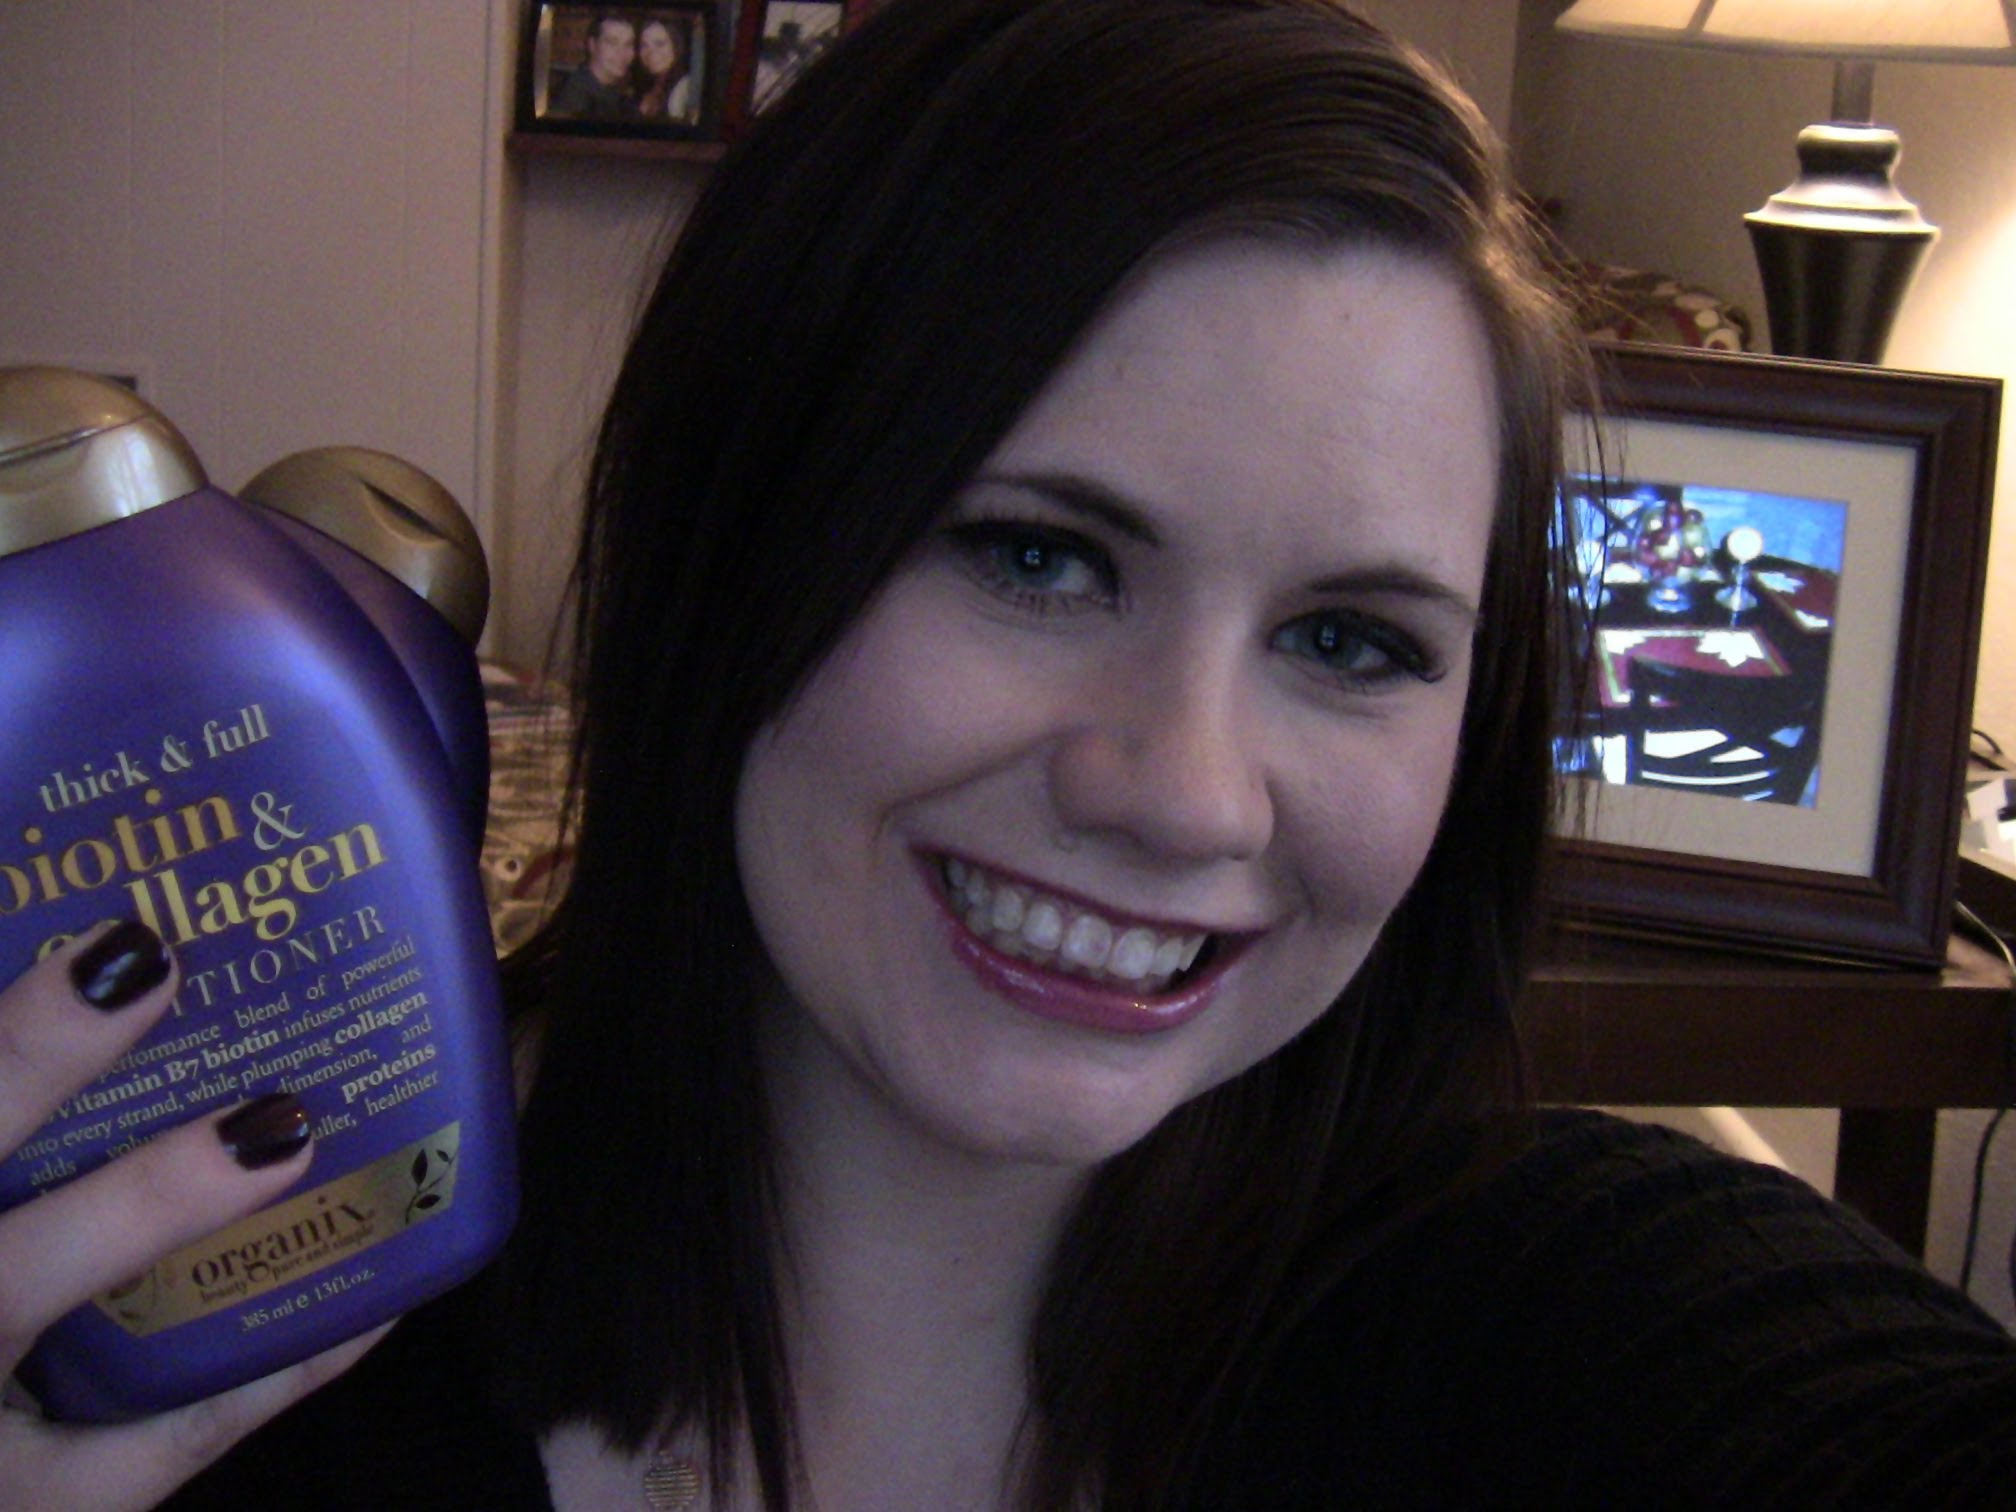 review-dau-goi-dau-xa-kich-moc-toc-organix-thick-full-biotin-collagen-shampoo